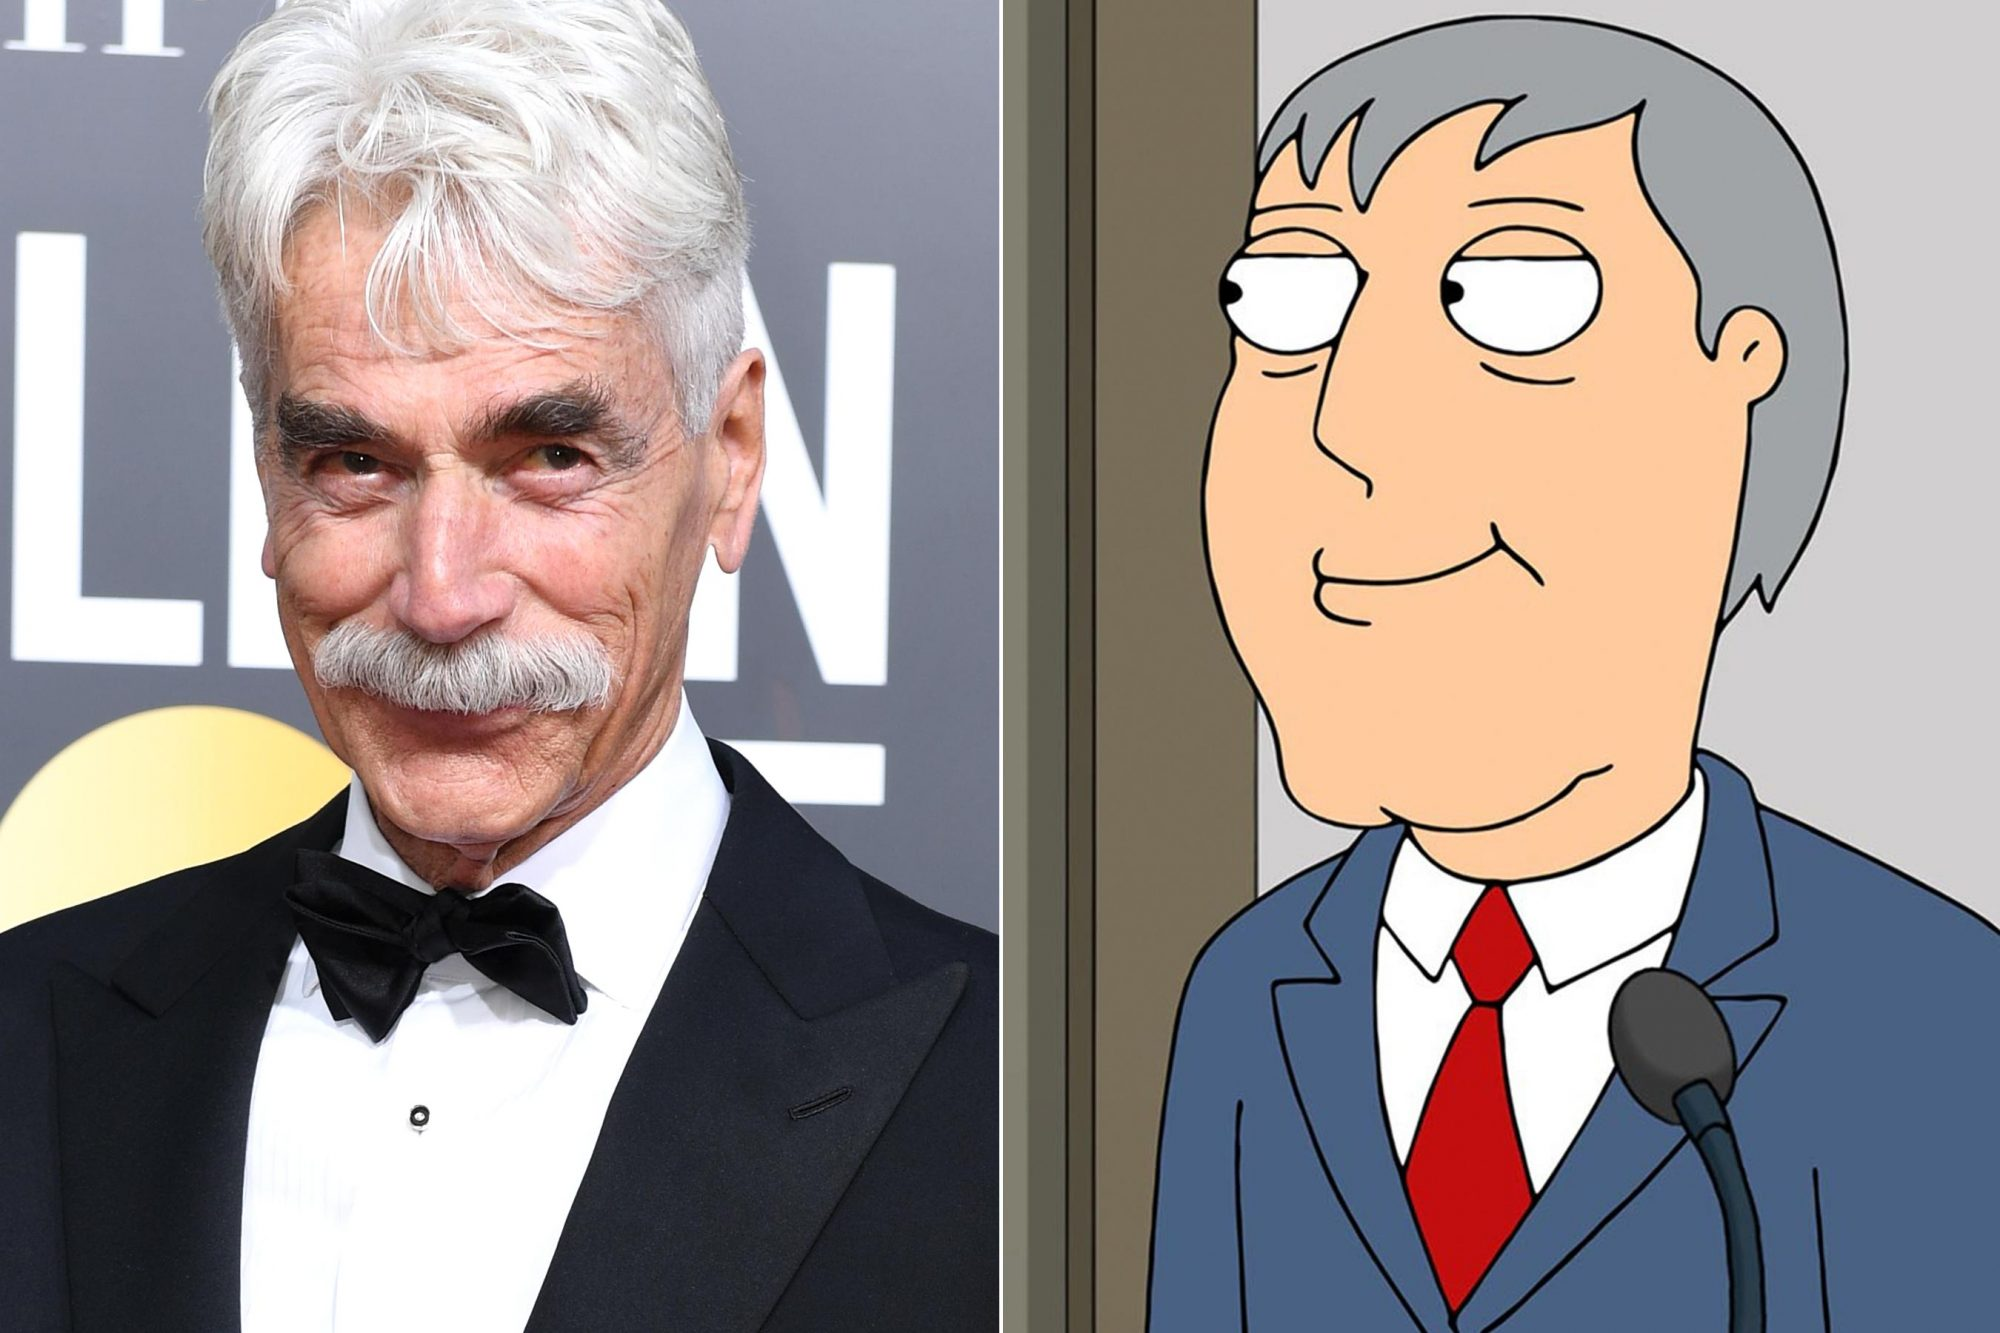 Actor Sam Elliott arrives for the 76th annual Golden Globe Awards on January 6, 2019, at the Beverly Hilton hotel in Beverly Hills, California. (Photo by VALERIE MACON / AFP) (Photo credit should read VALERIE MACON/AFP/Getty Images) FAMILY GUY, l-r: Mayor Adam West (voice: Adam West), Peter Griffin (voice: Seth MacFarlane) in 'JOLO' (Season 13, Episode 14, aired April 12, 2015). TM and Copyright ©20th Century Fox Film Corp. All rights reserved./courtesy Everett Collection